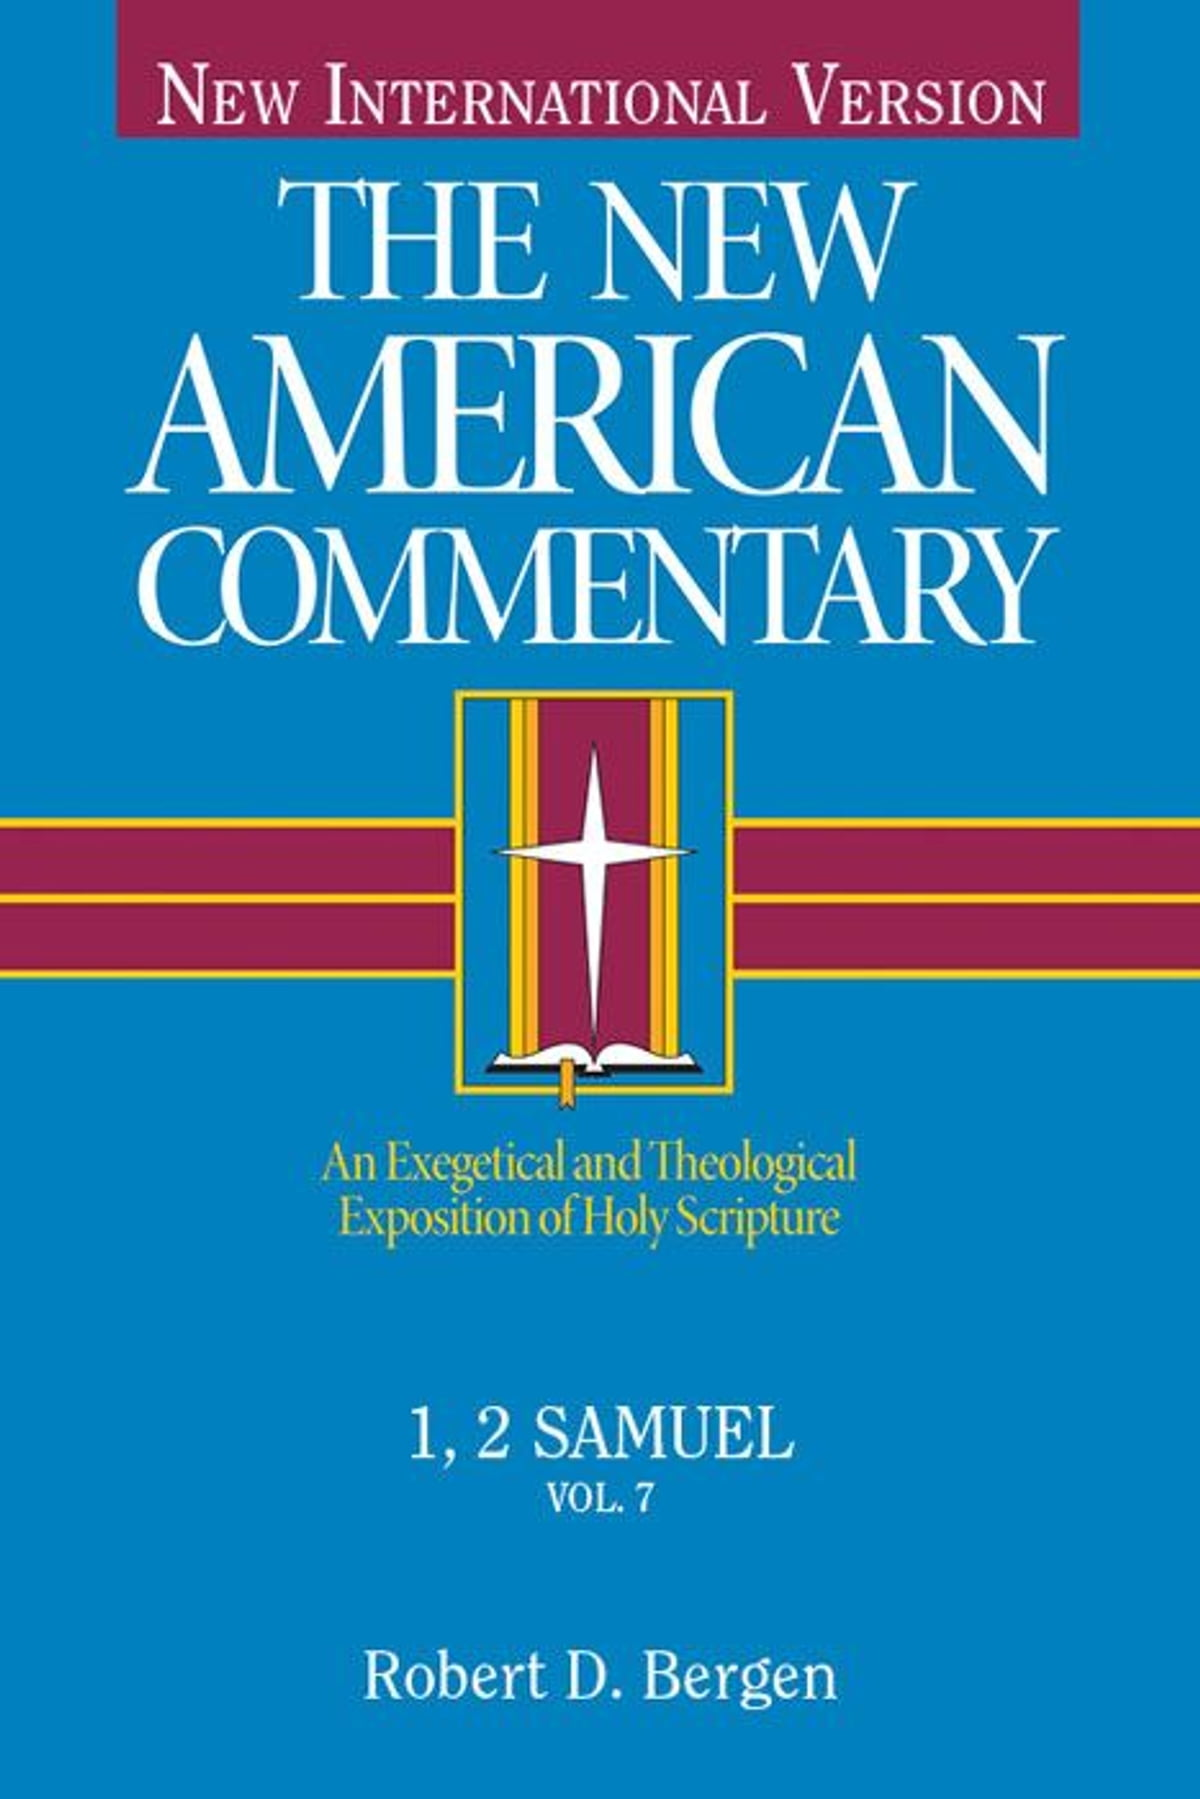 The new american commentary volume 7 1 2 samuel ebook by robert the new american commentary volume 7 1 2 samuel ebook by robert d bergen 9781433675539 rakuten kobo fandeluxe Ebook collections